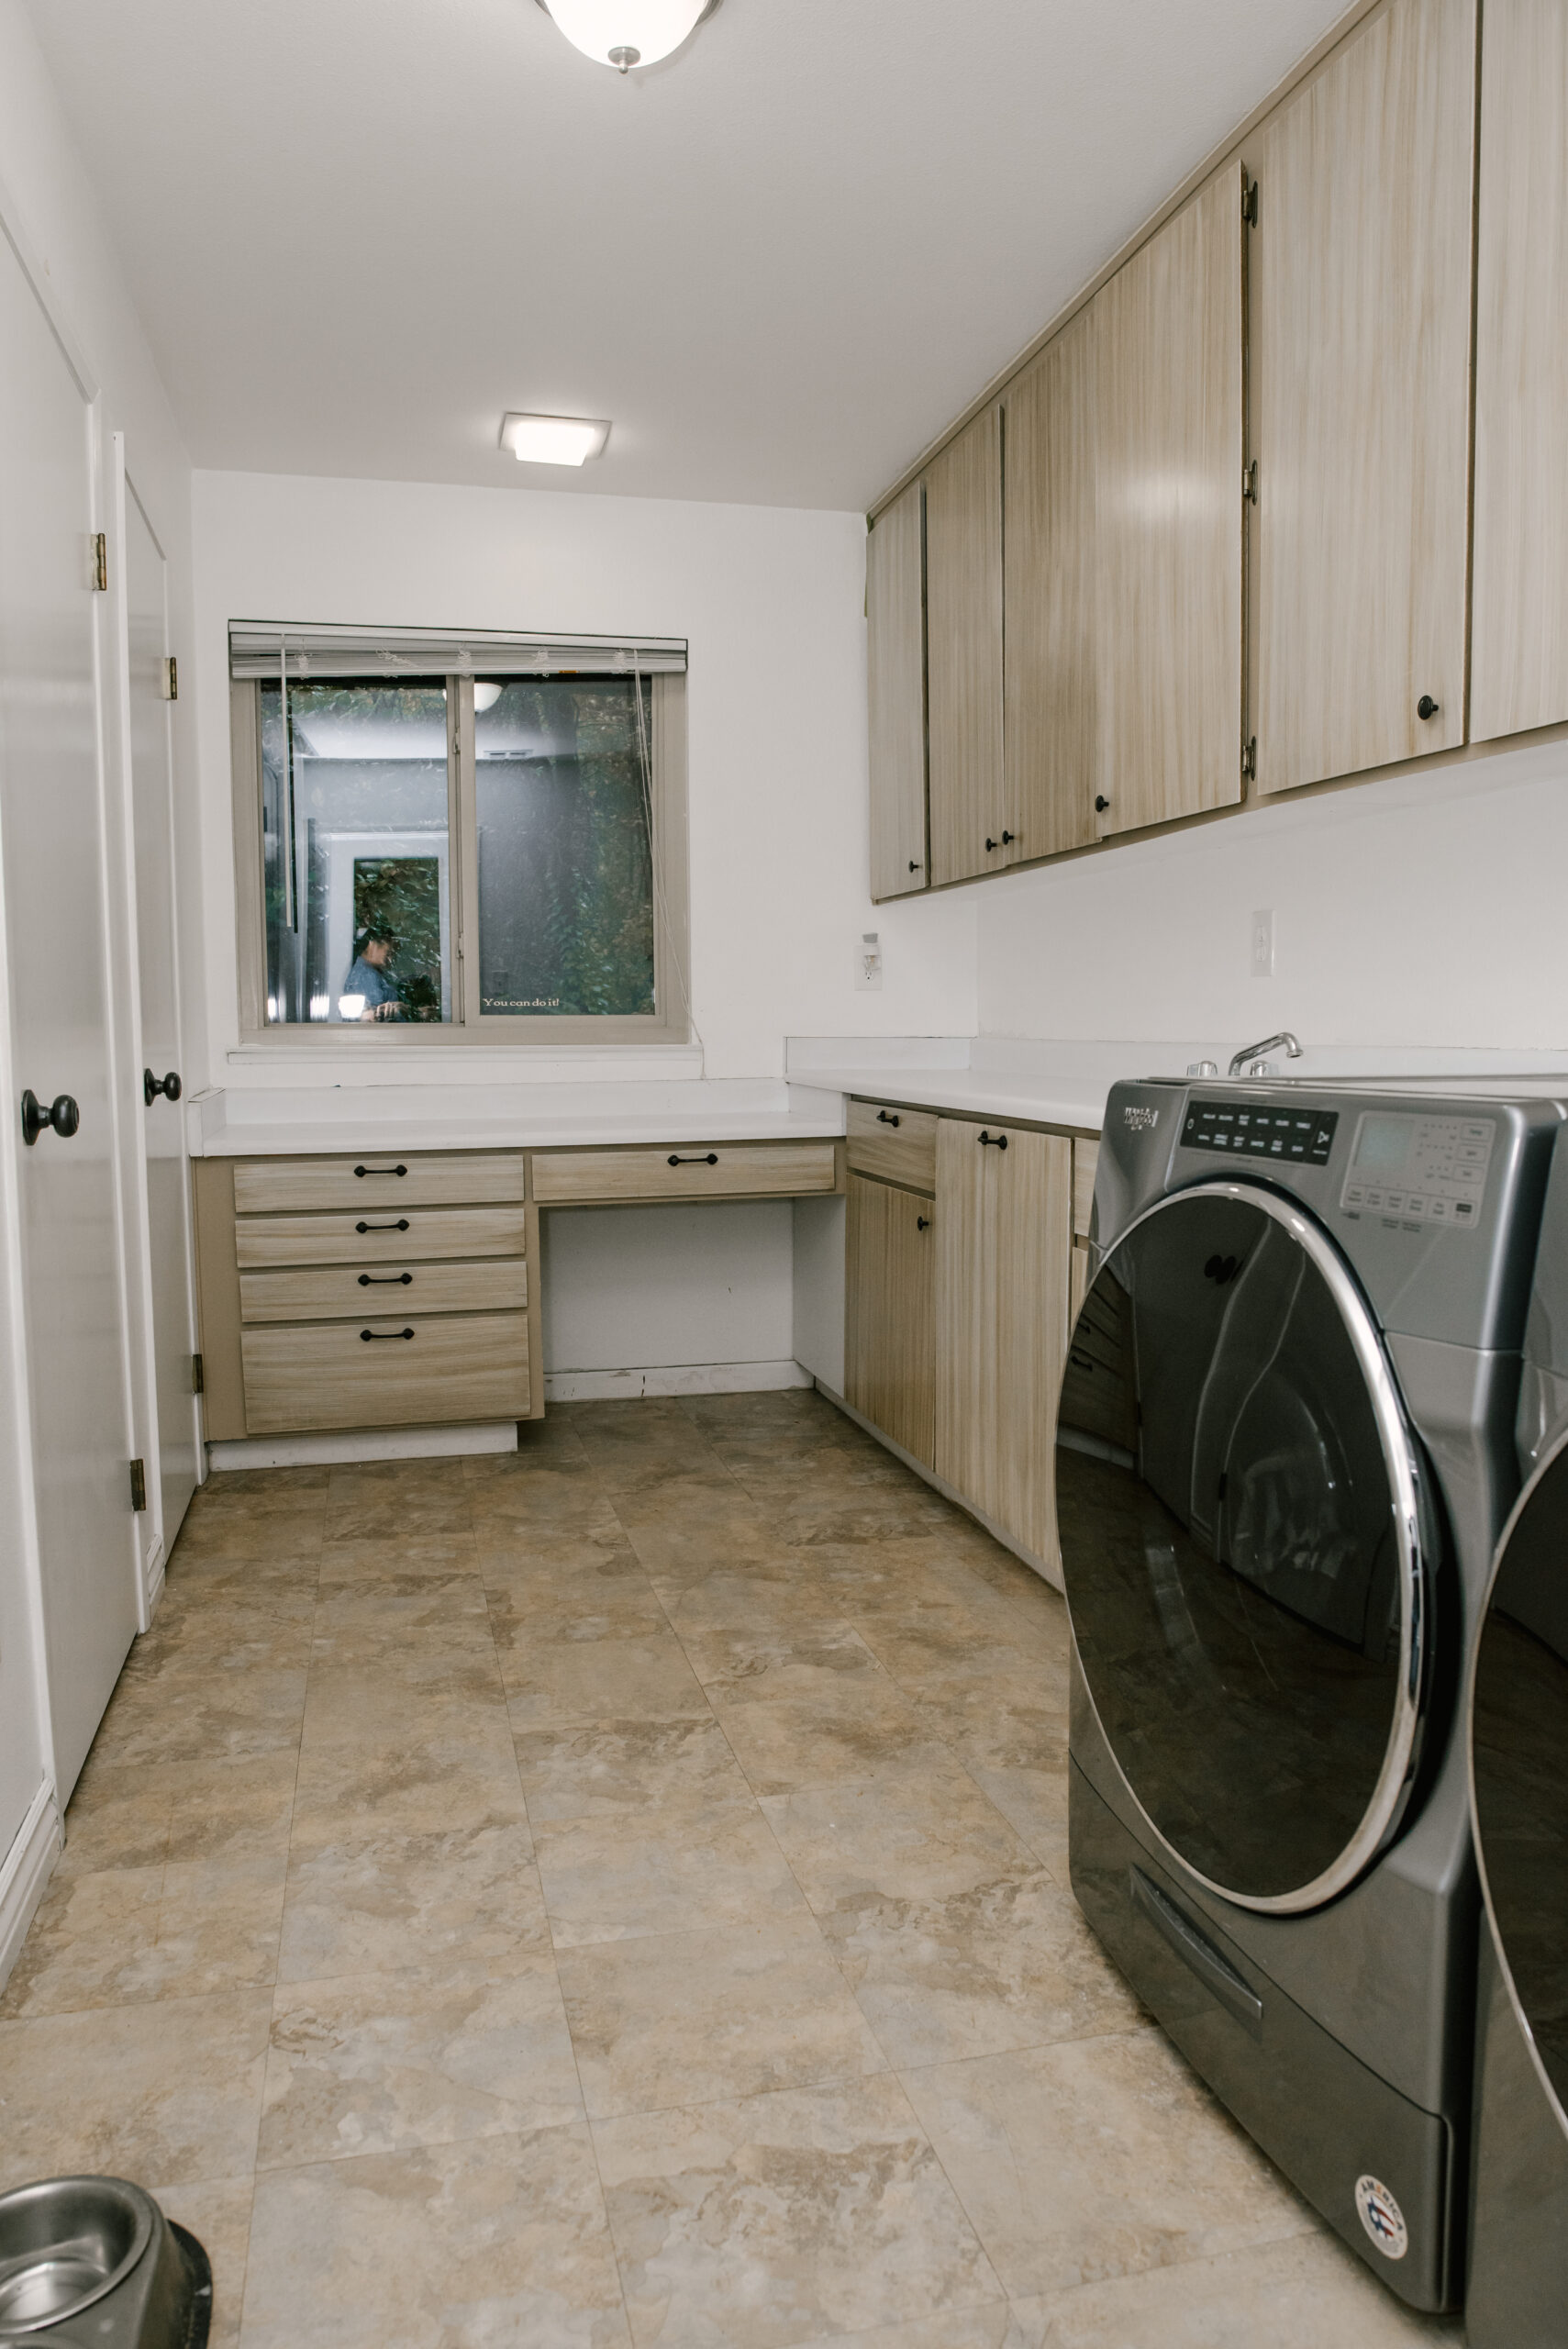 Ruthie Ridley Blog Laundry Room Renovation With The Home Depot